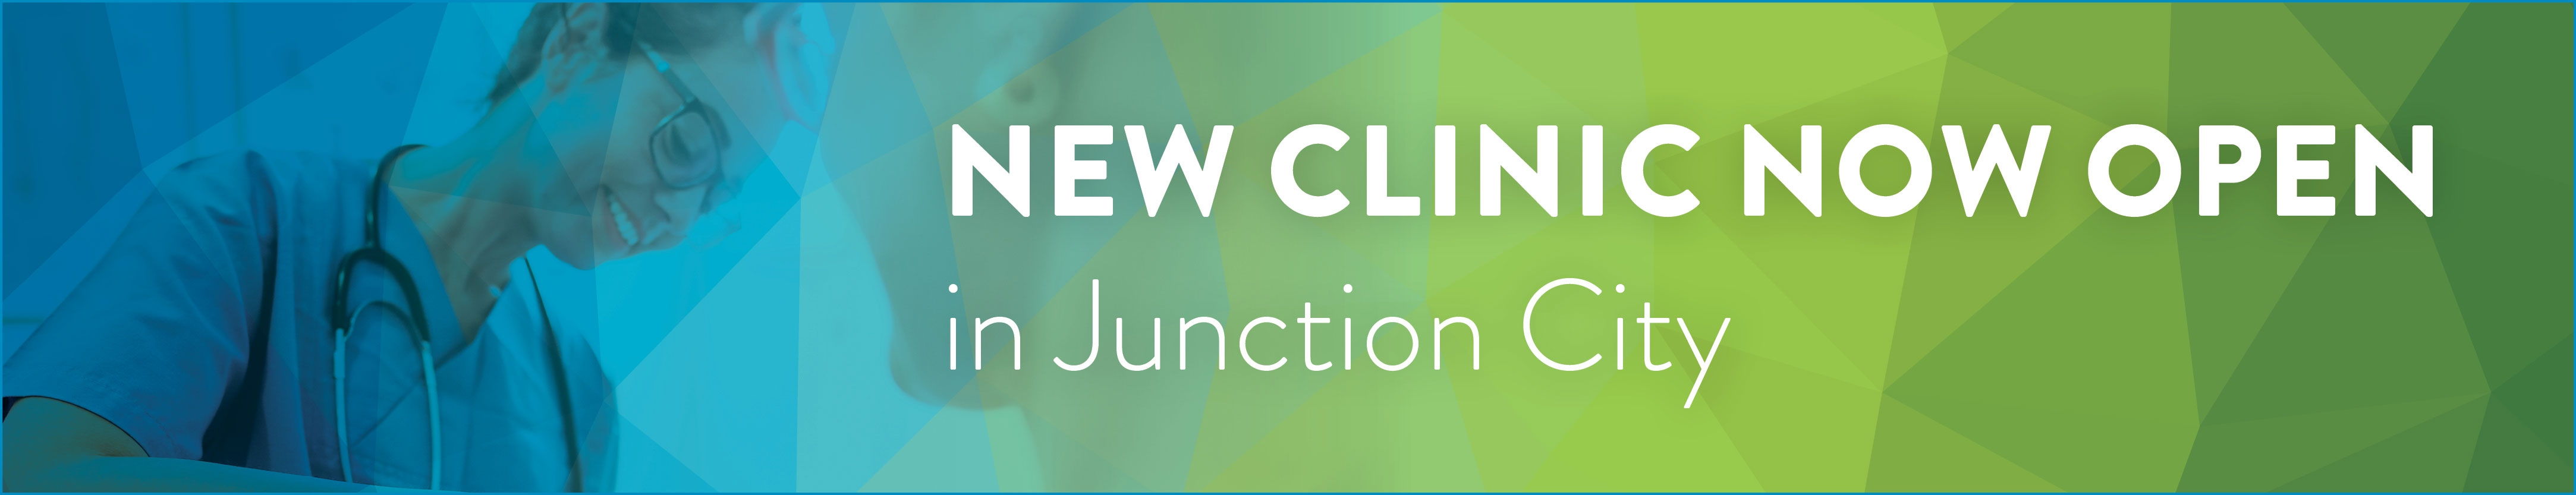 OSF Urgo Website Header - Junction City Now Open.jpg